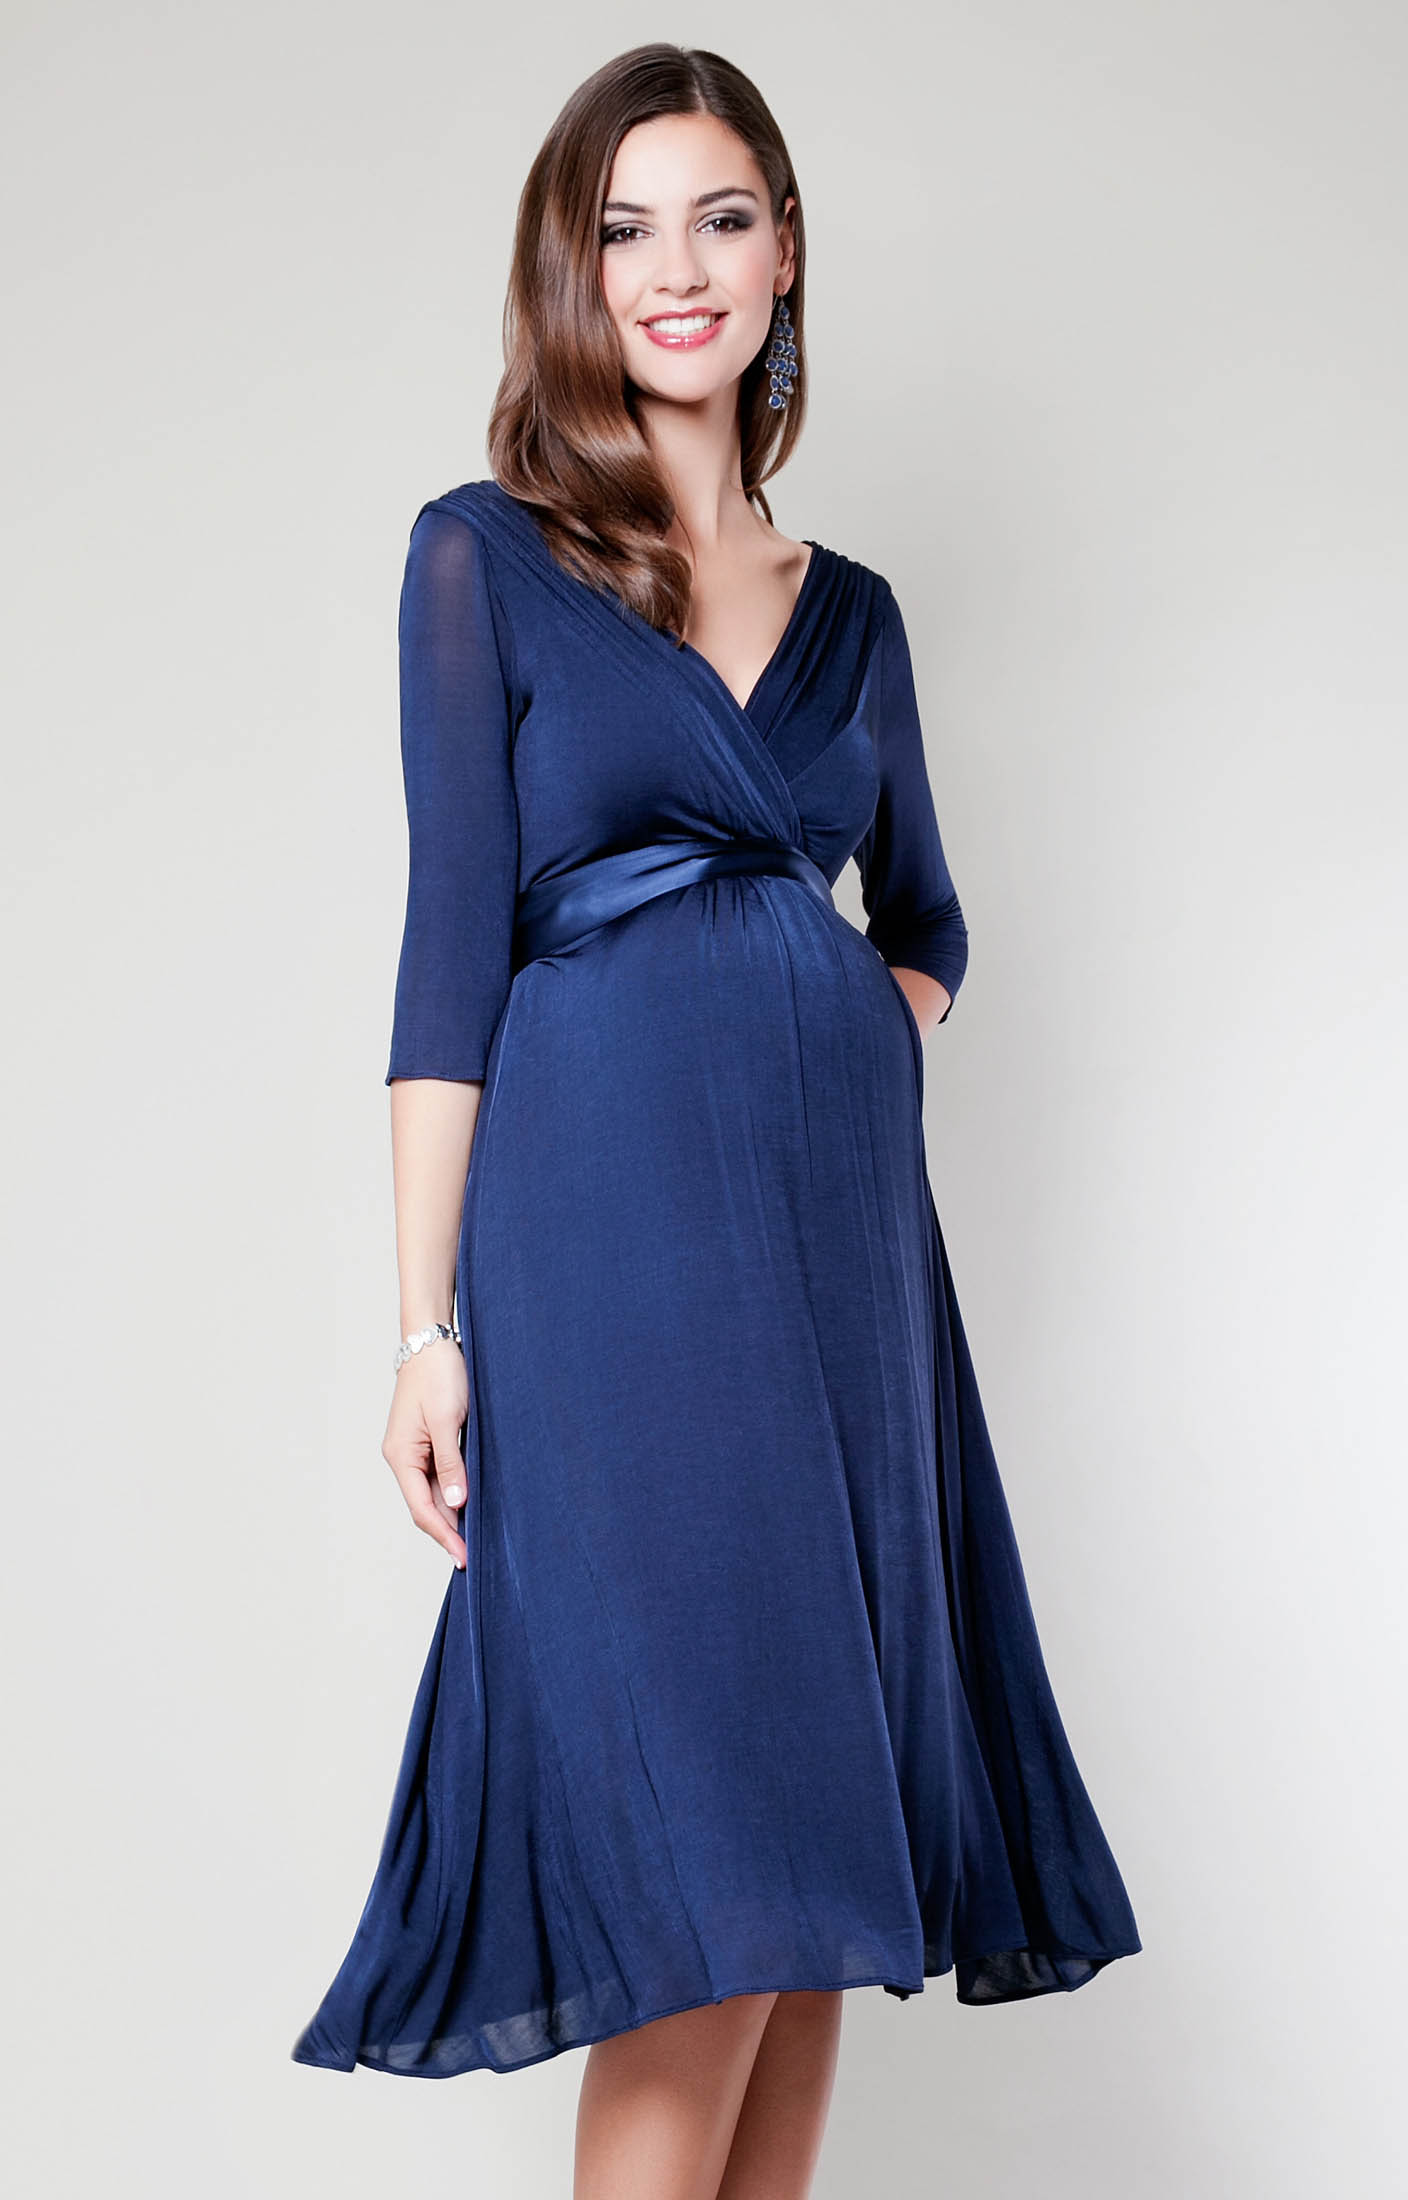 maternity wear willow maternity dress (midnight blue) by tiffany rose tkdazkq